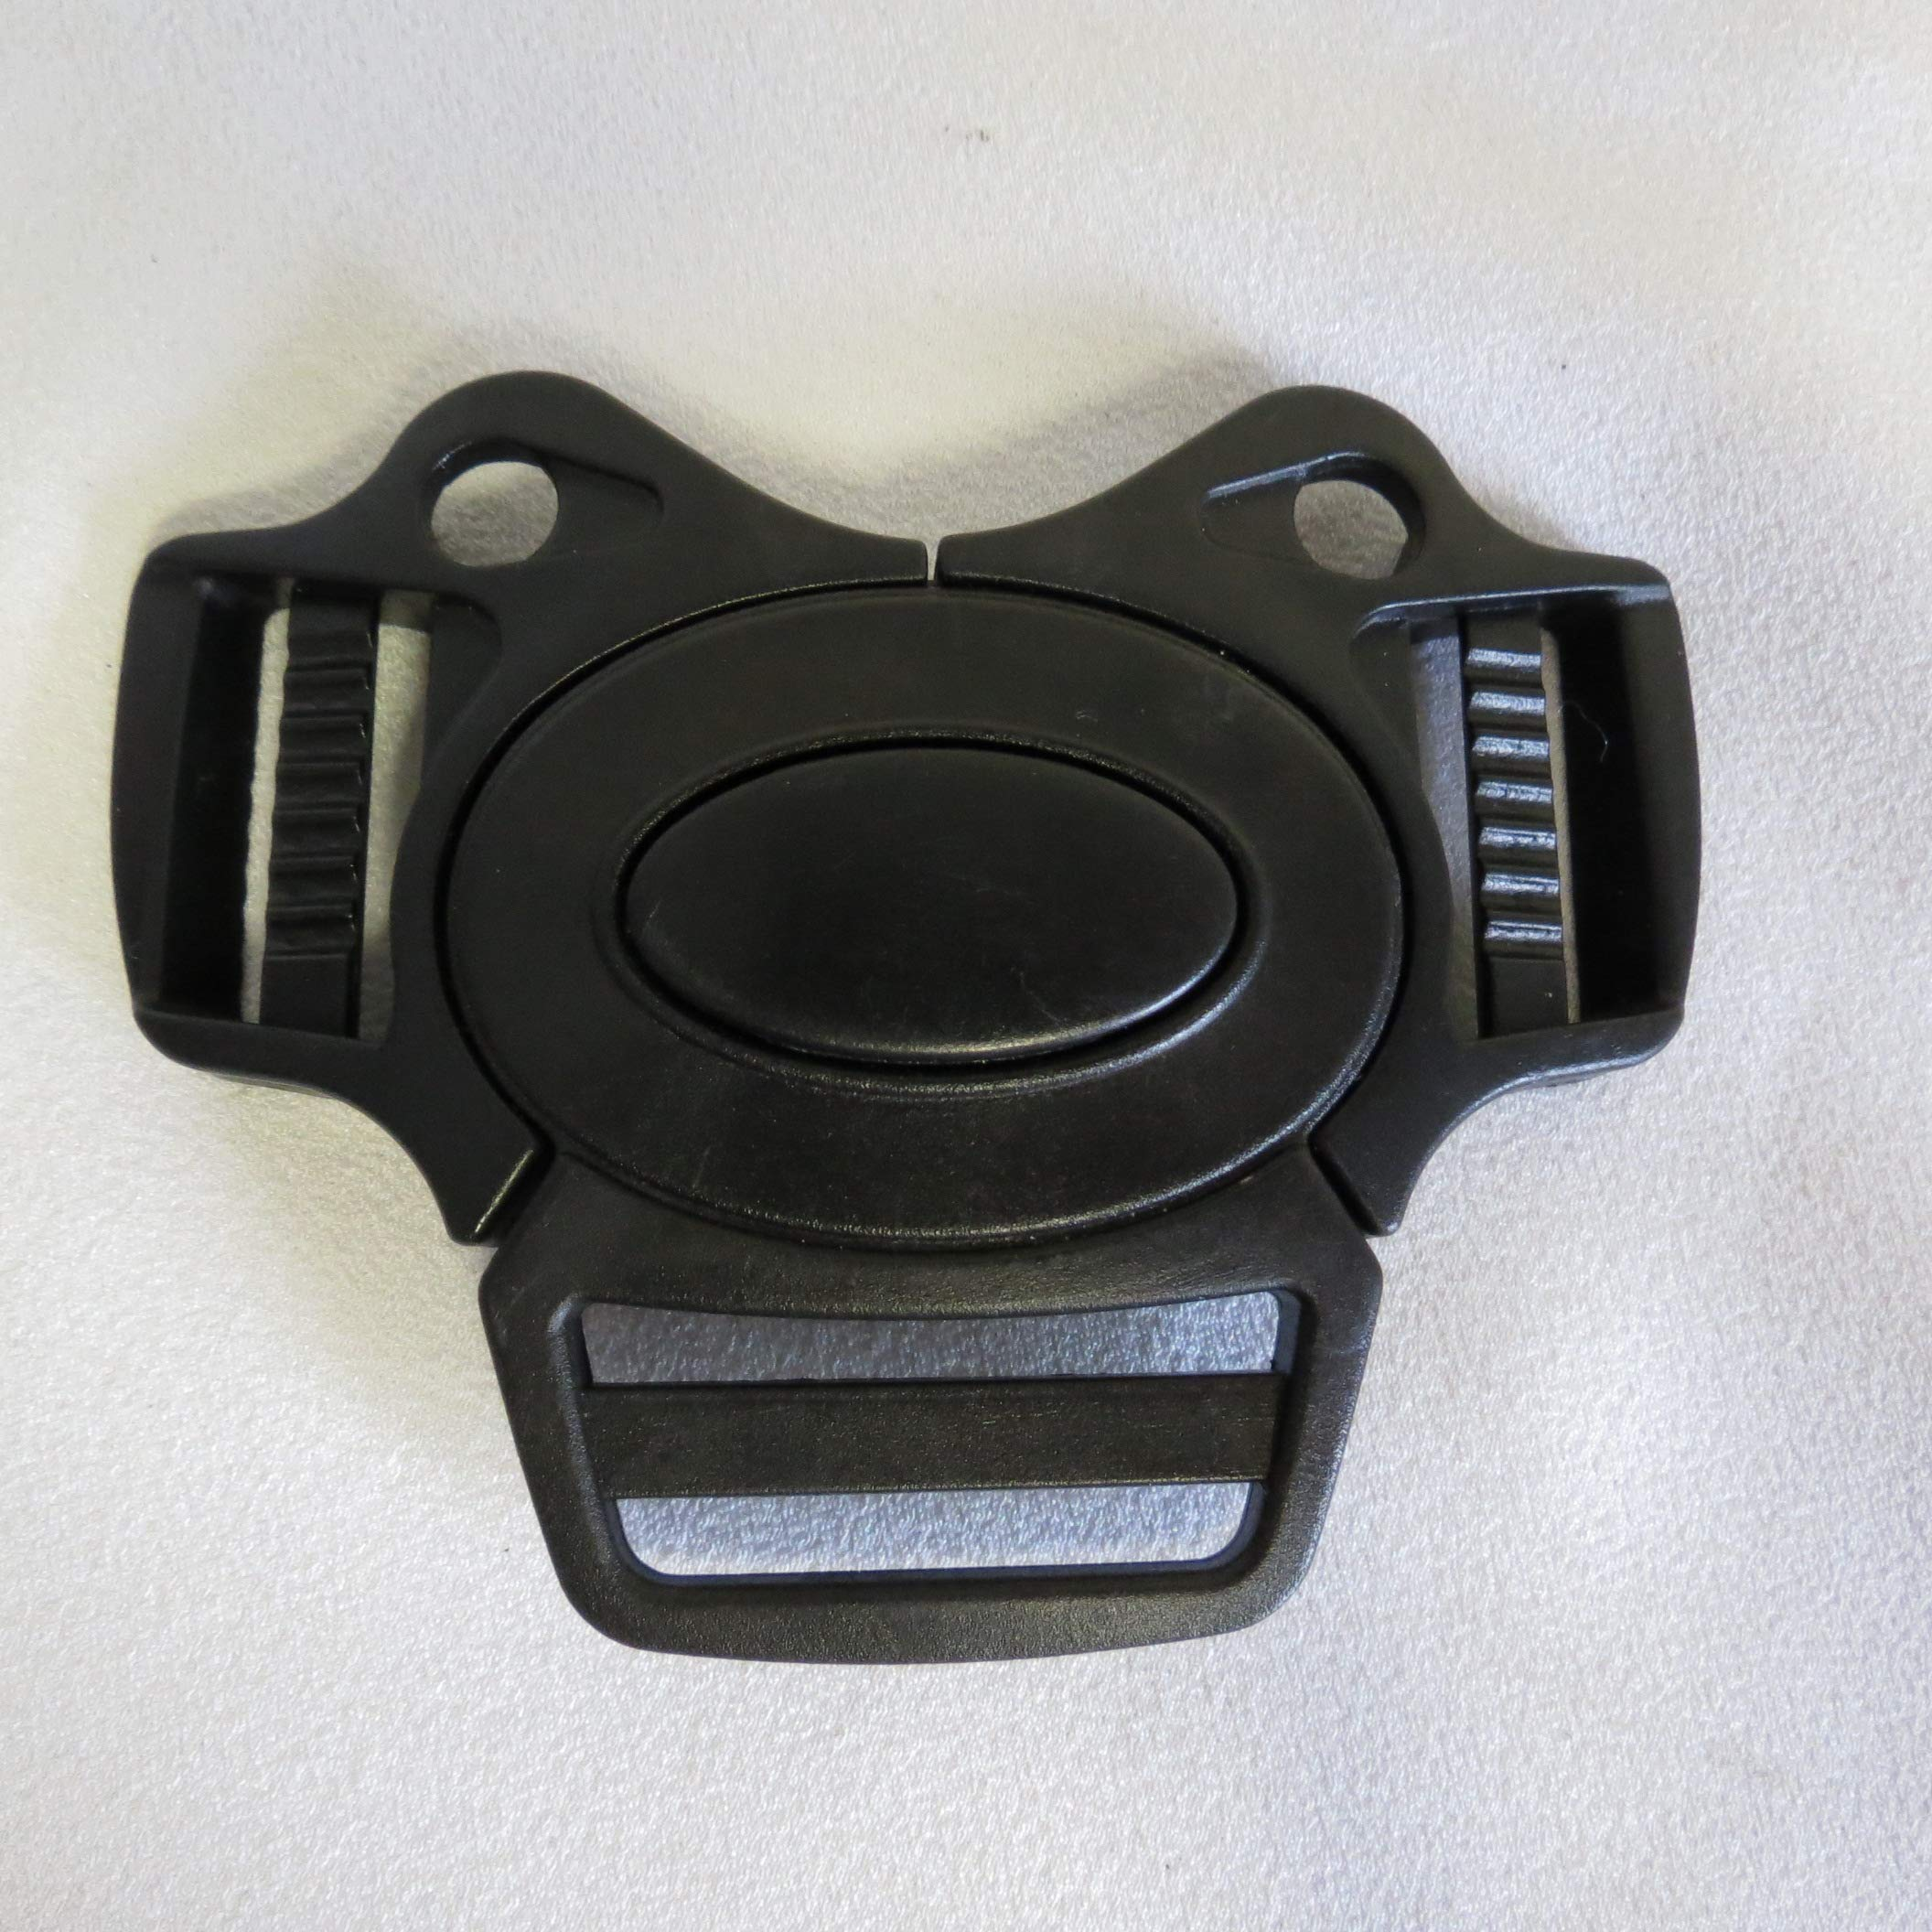 Replacement Parts/Accessories to fit Summer Infant Strollers and Car Seats Products for Babies, Toddlers, and Children (5 Point Buckle ONLY)